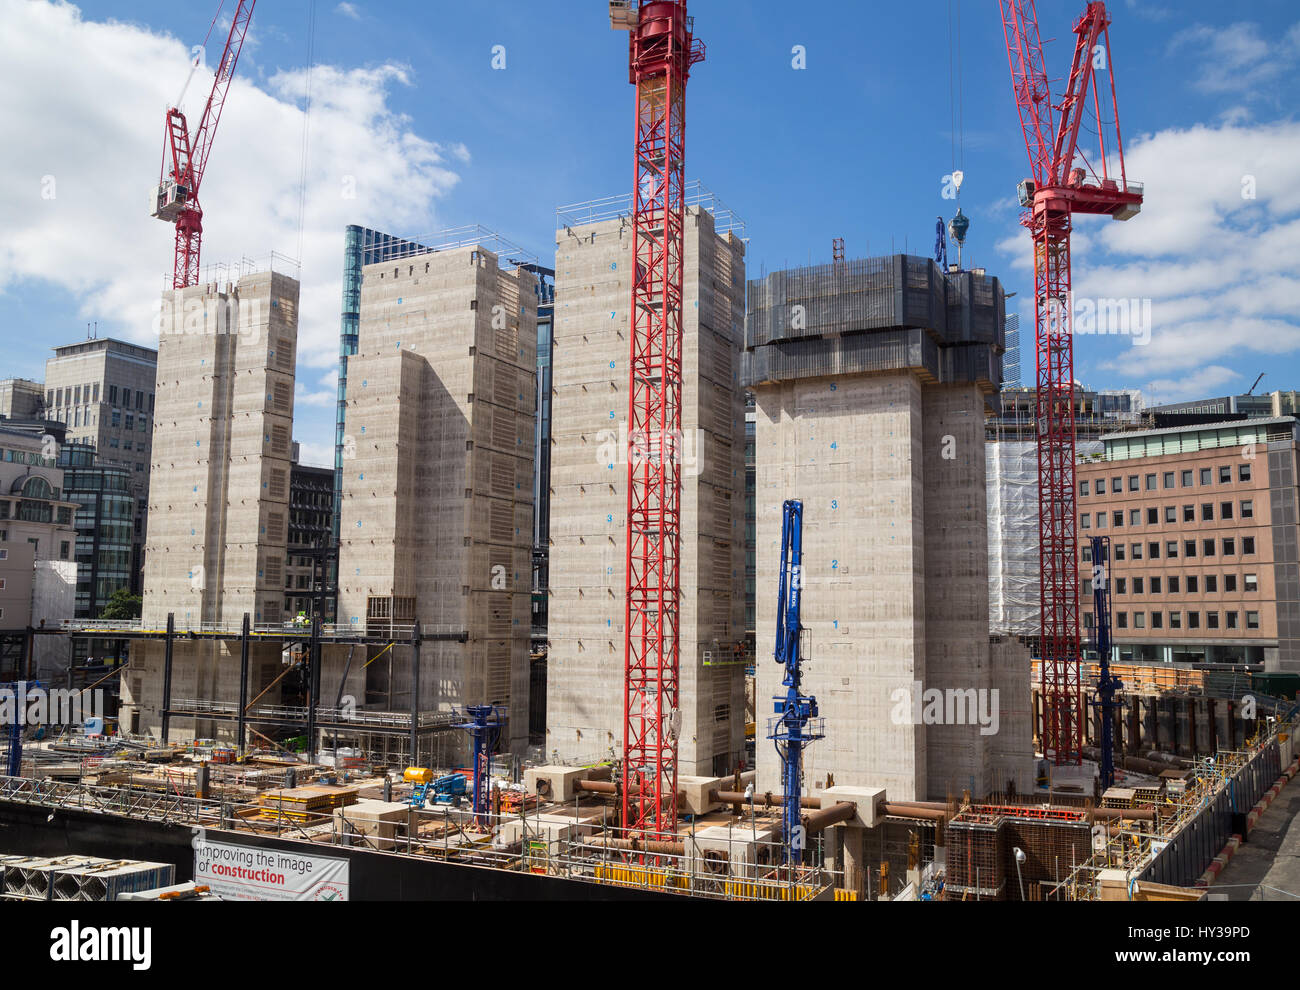 Construction site of investment bank Goldman Sachs new European